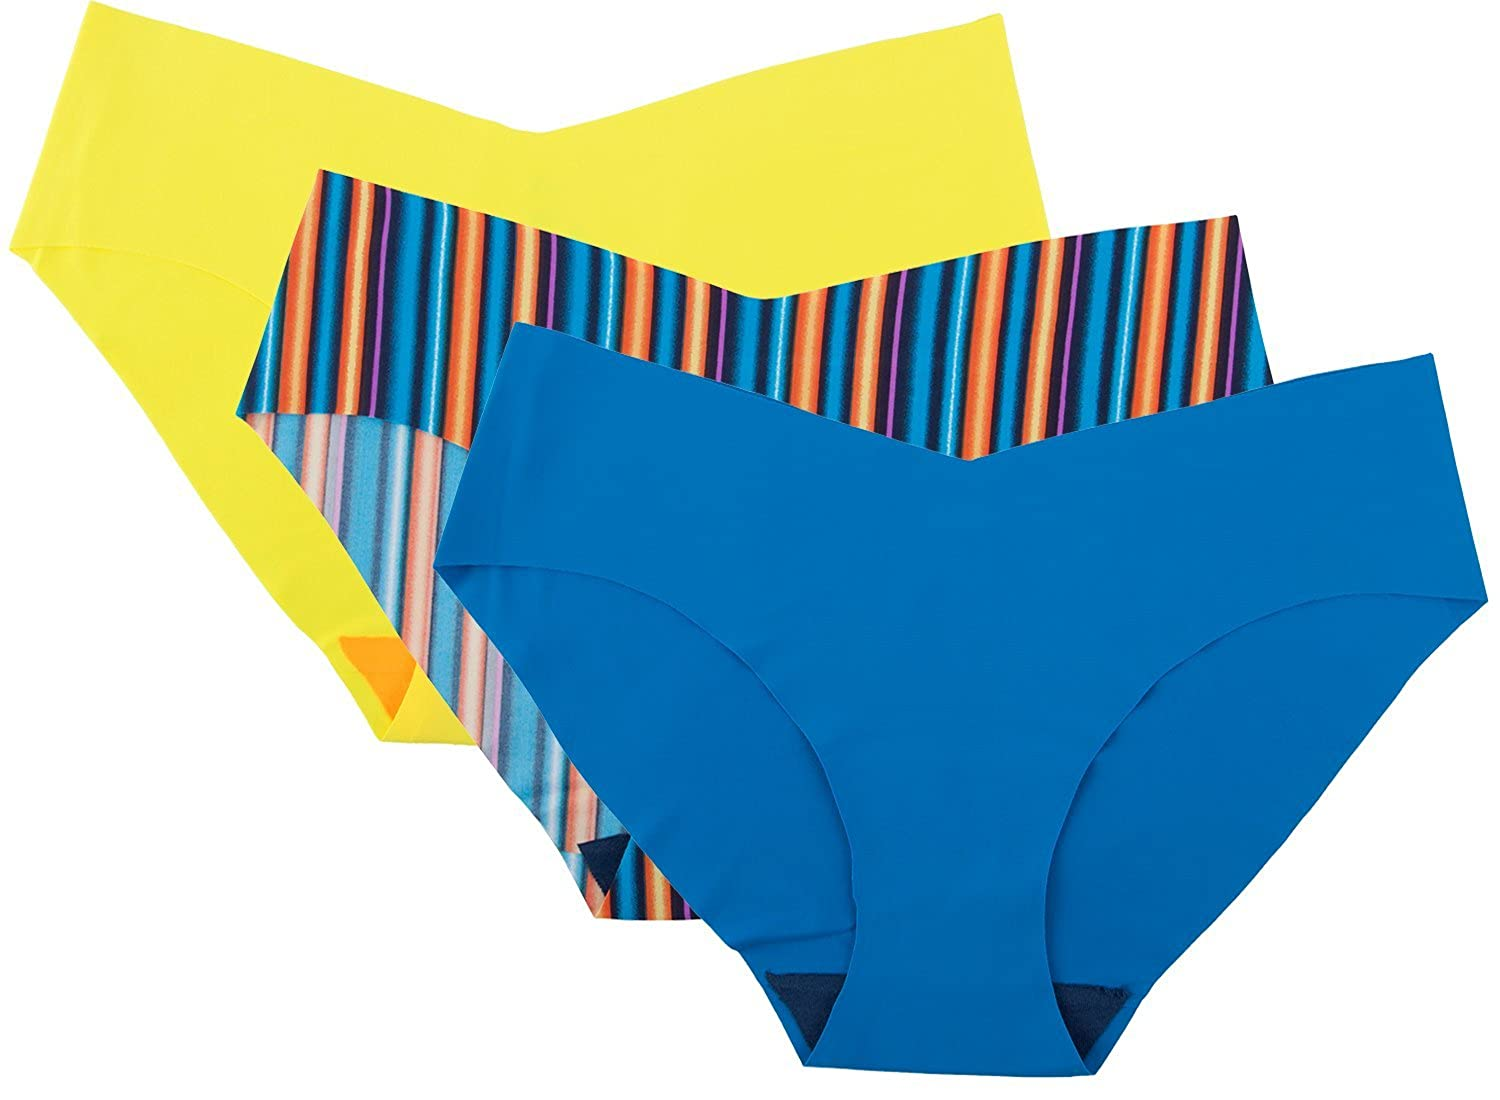 9b405cccc50 Each pack includes 3 bikini panties assorted printed and solid colors.  Invisible laser cut edges provide a flawless finish with no show panty lines